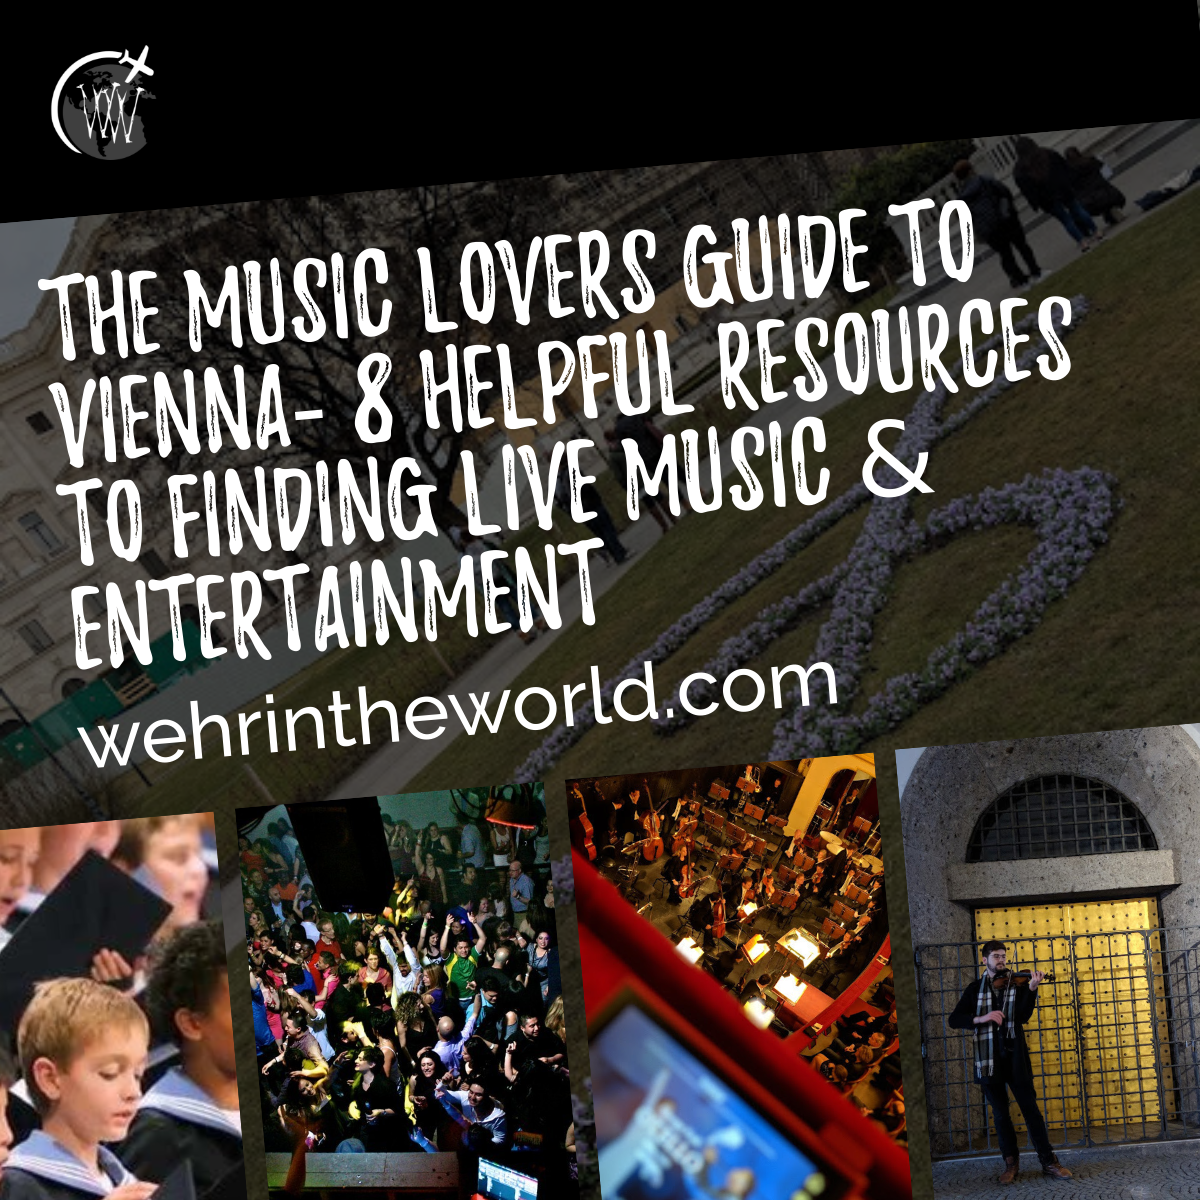 The Music Lovers Guide to Vienna - 8 Helpful Resources to Finding Live Music & Entertainment